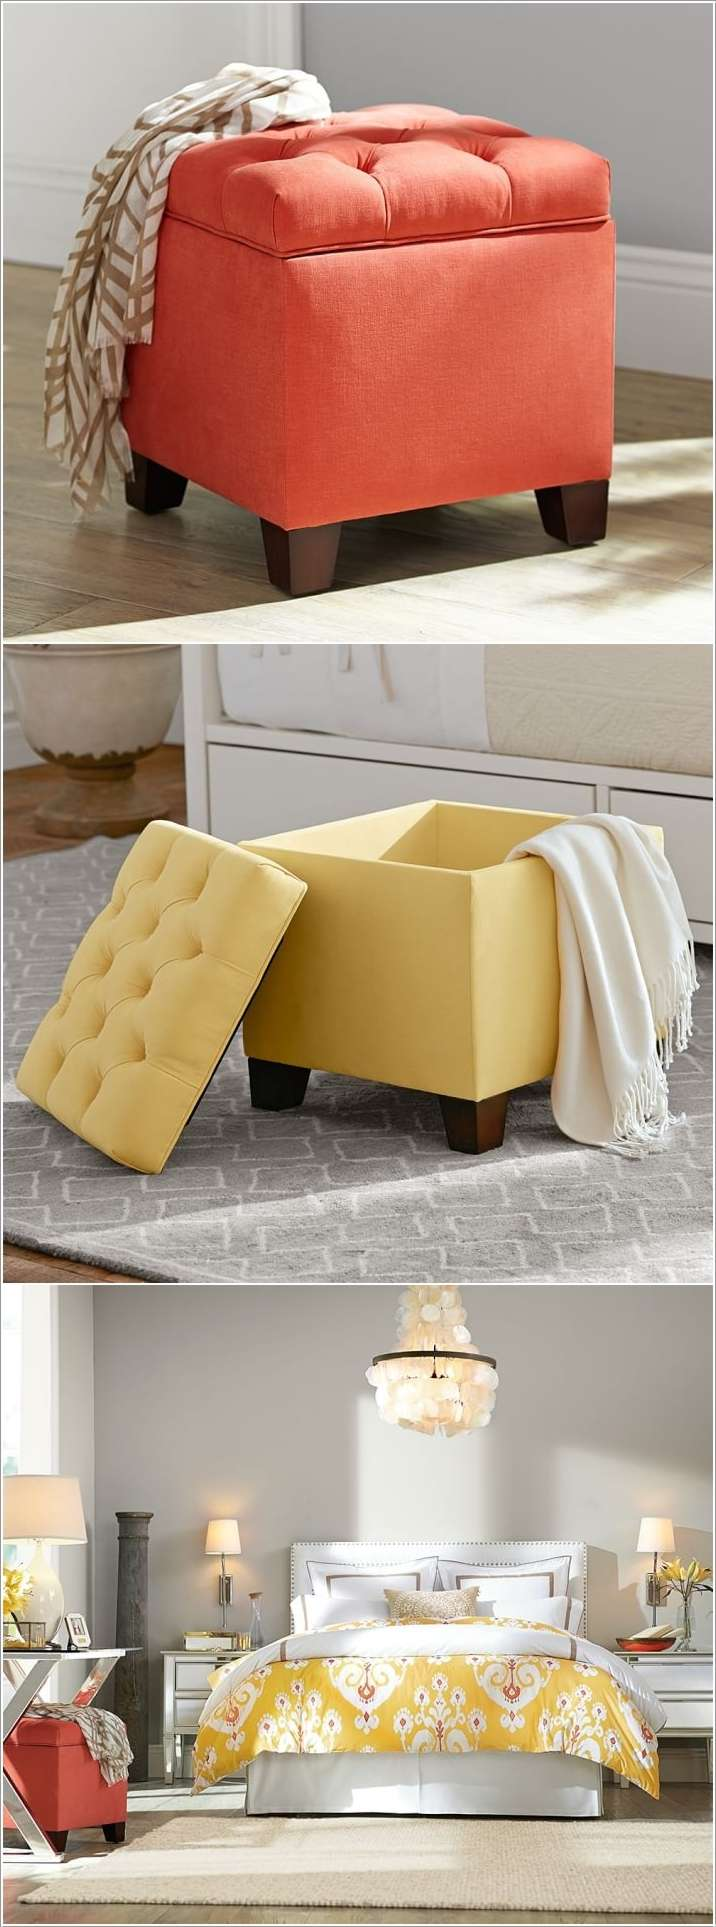 AD-Clever-Ideas-To-Use-Bedroom-Furniture-For-Storage-10